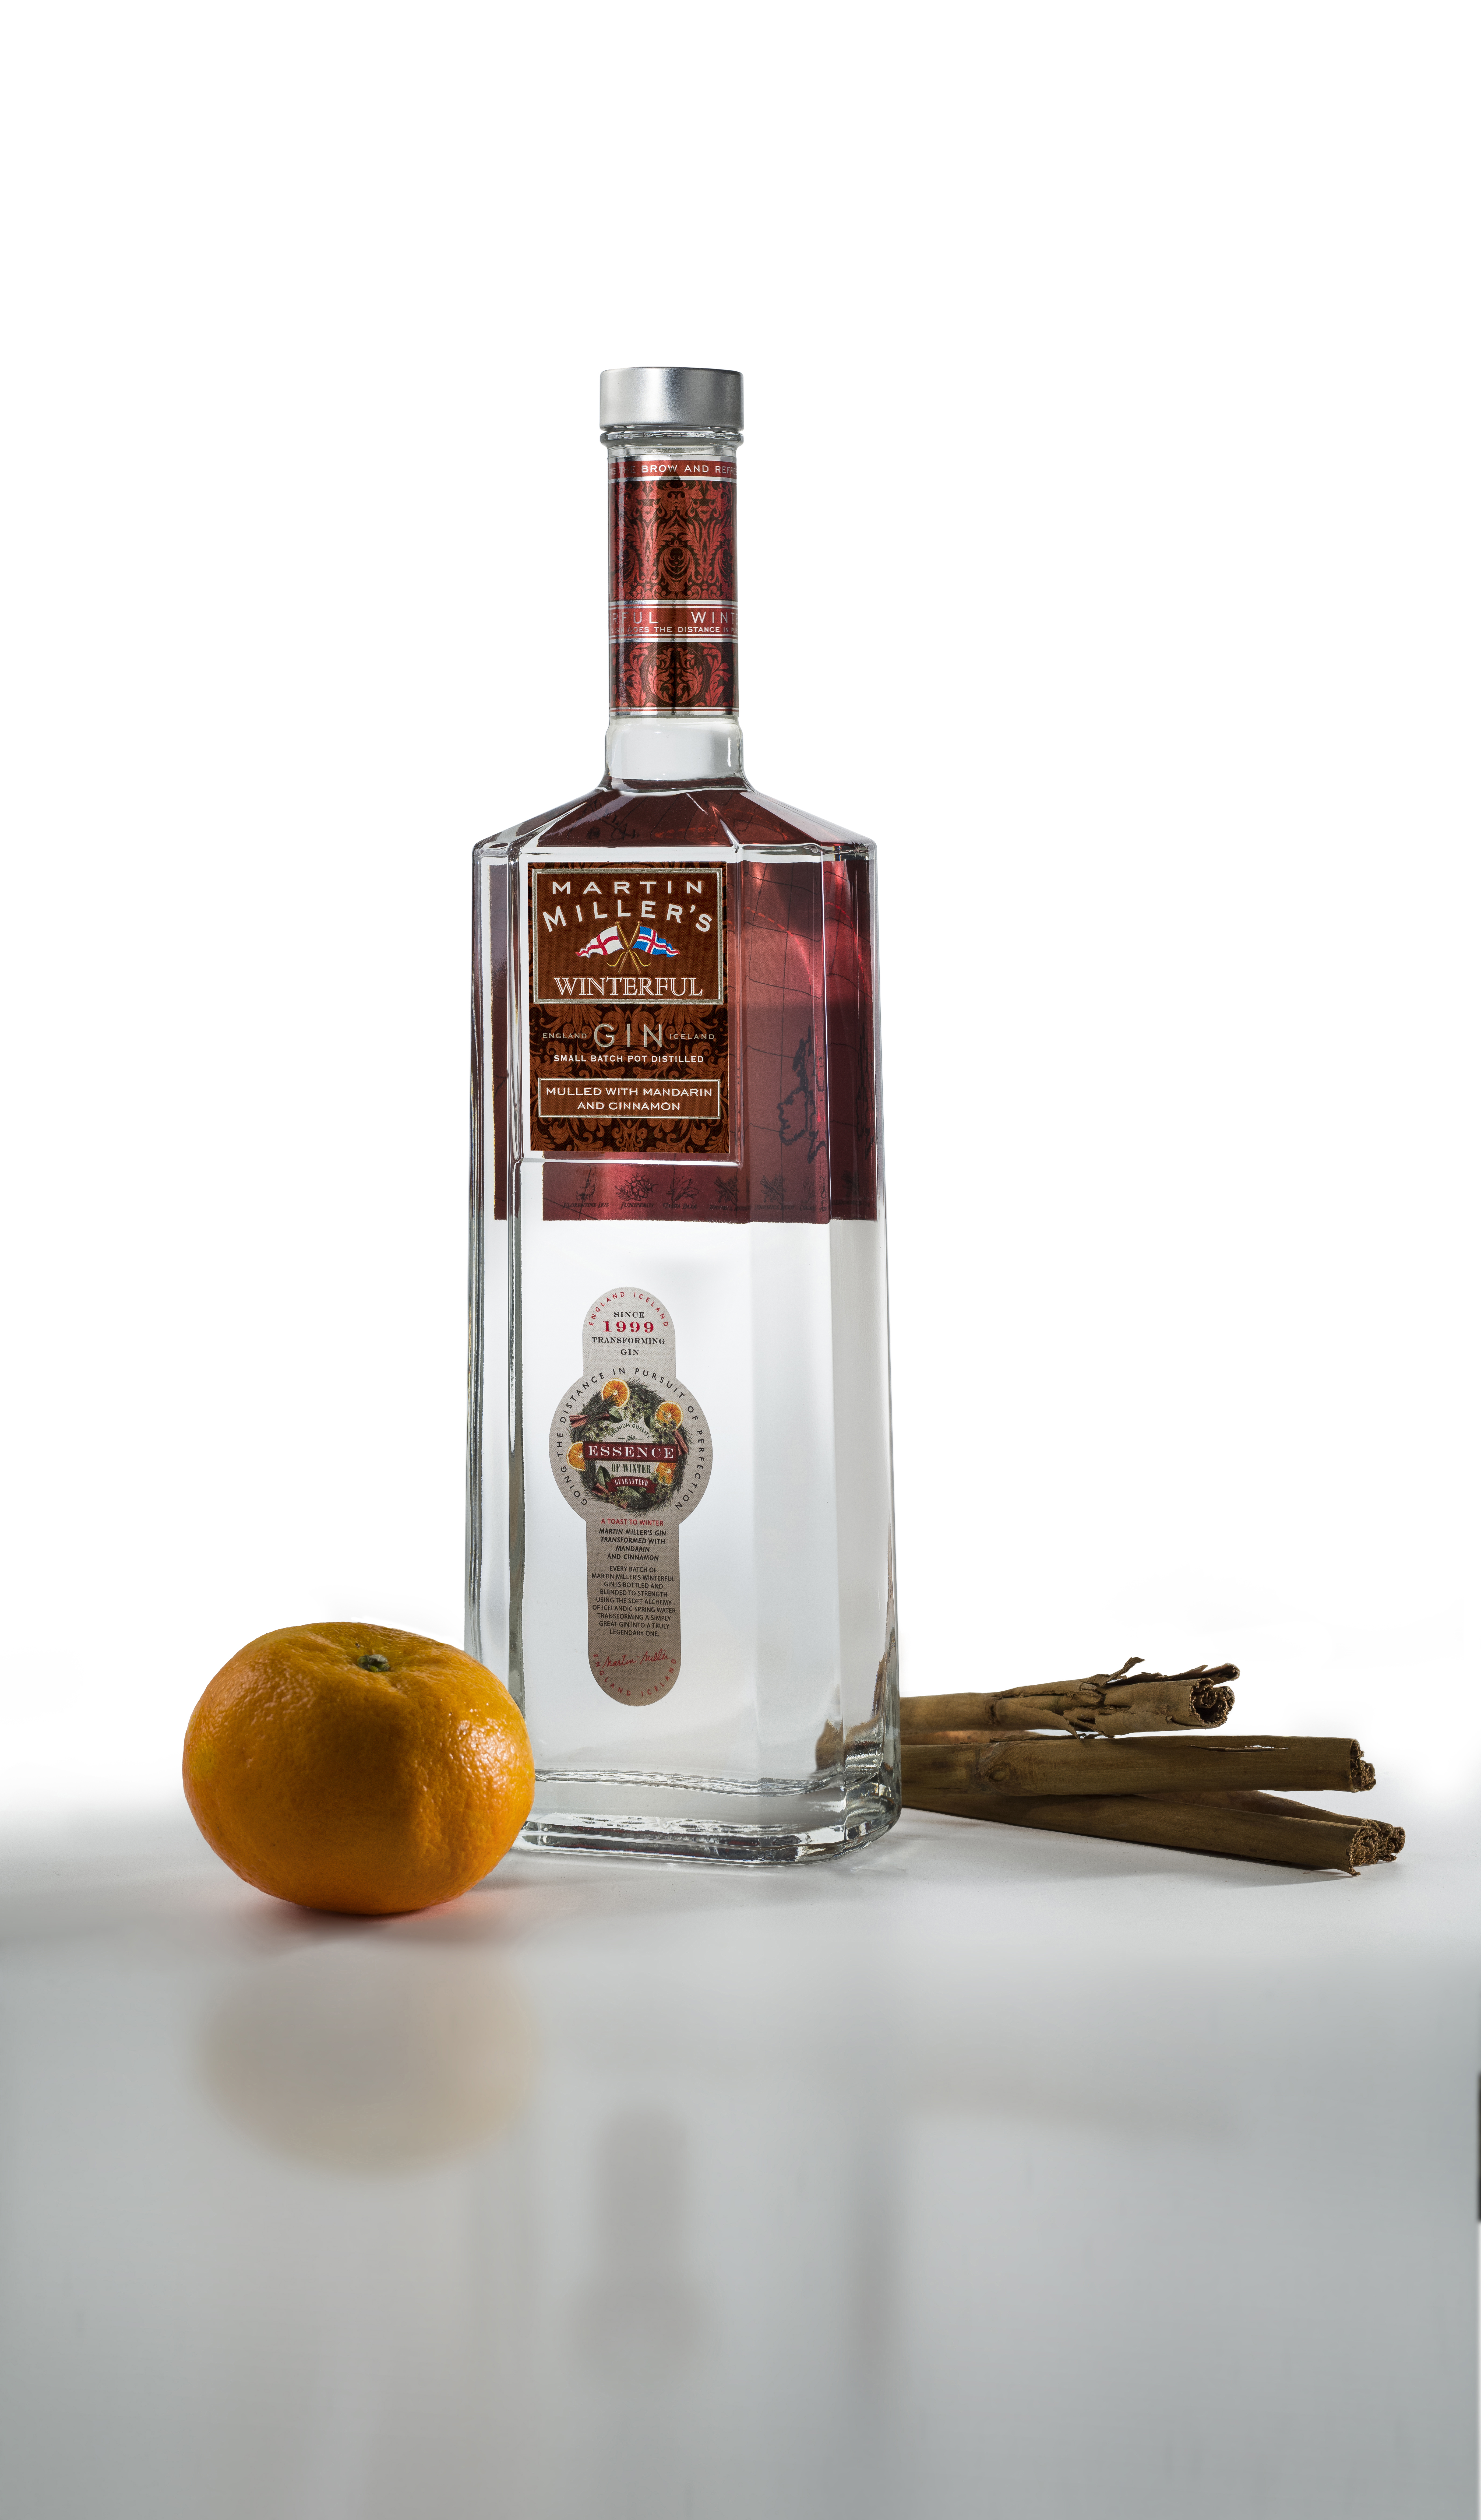 Martin Miller Winterful Gin 0.7L (40% Vol) England Iceland Gin special Edition- [Enthält Sulfite]